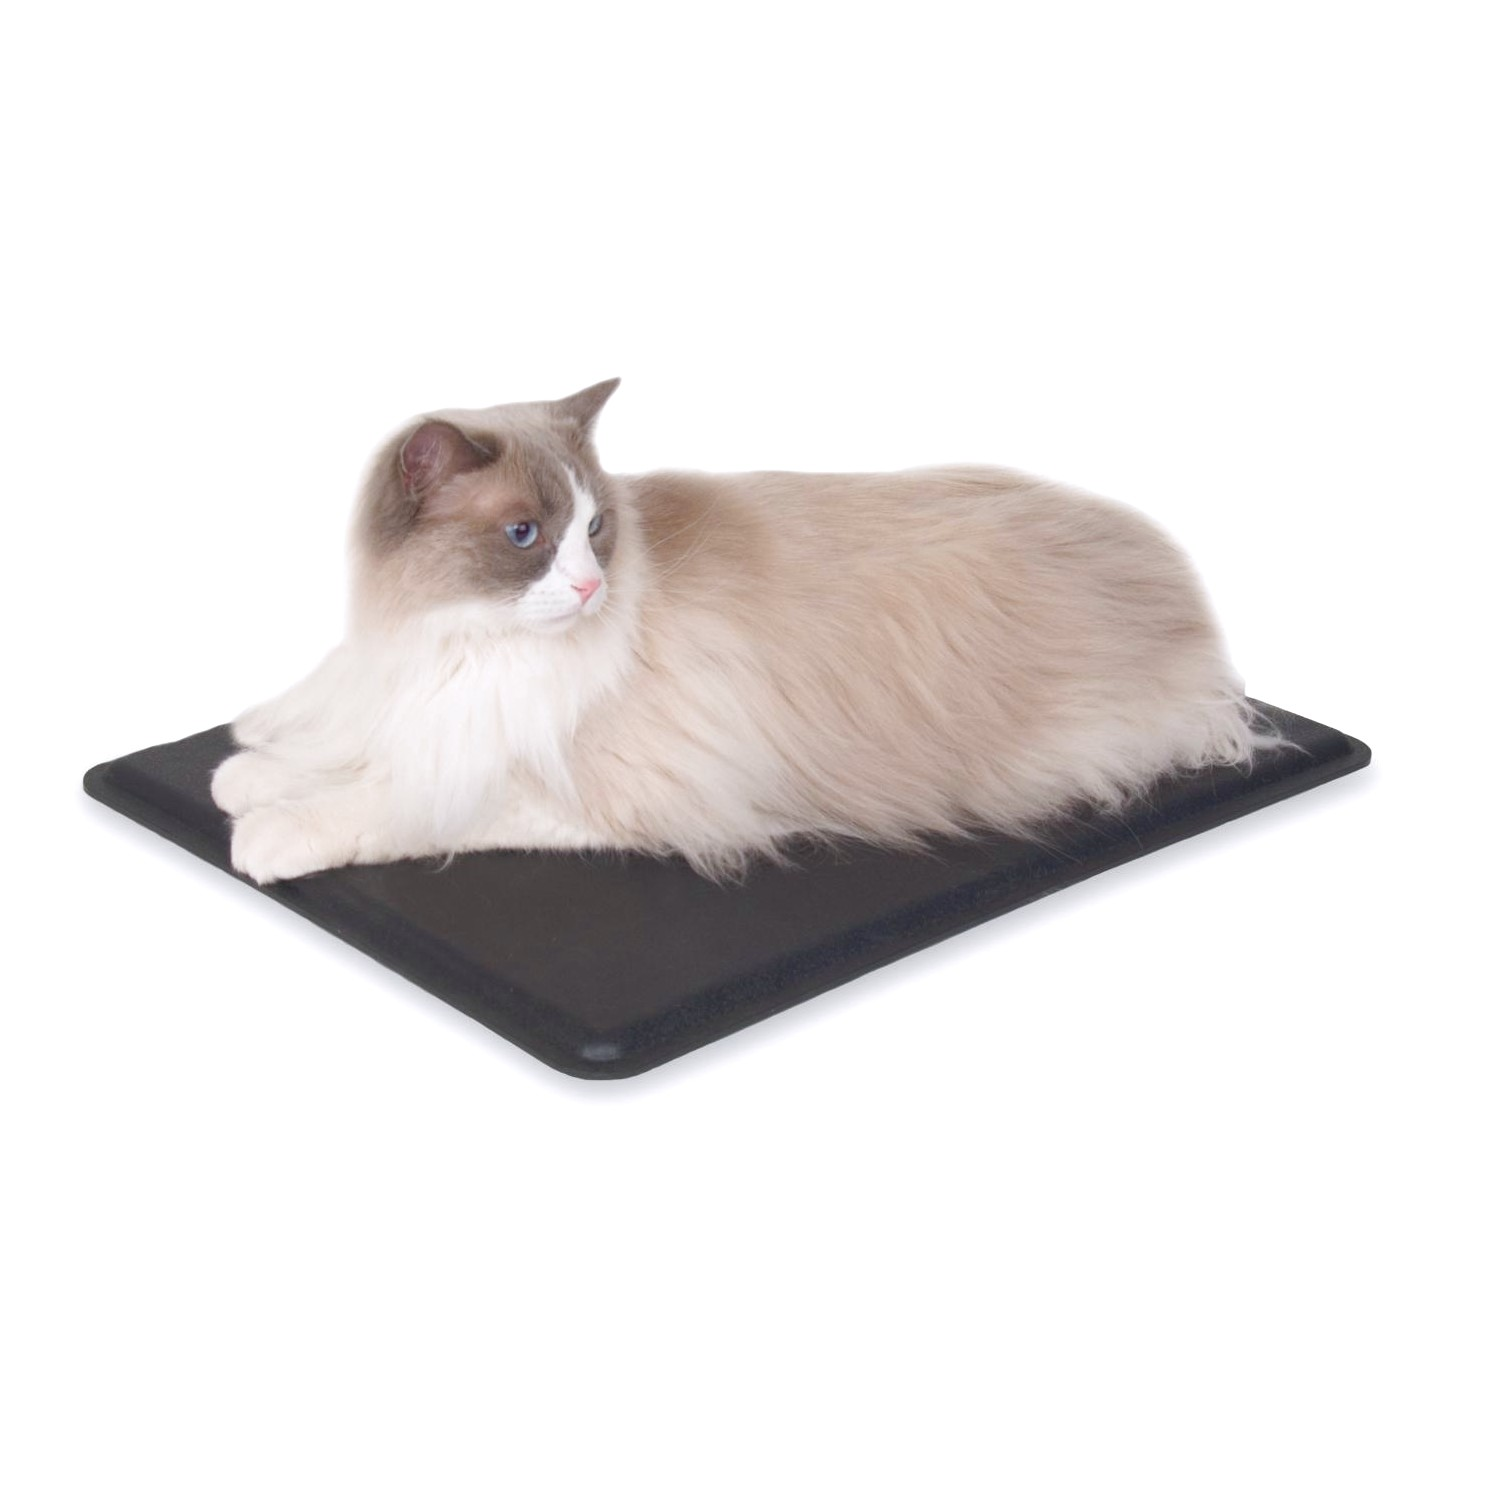 Outdoor Heating Pad For Cats